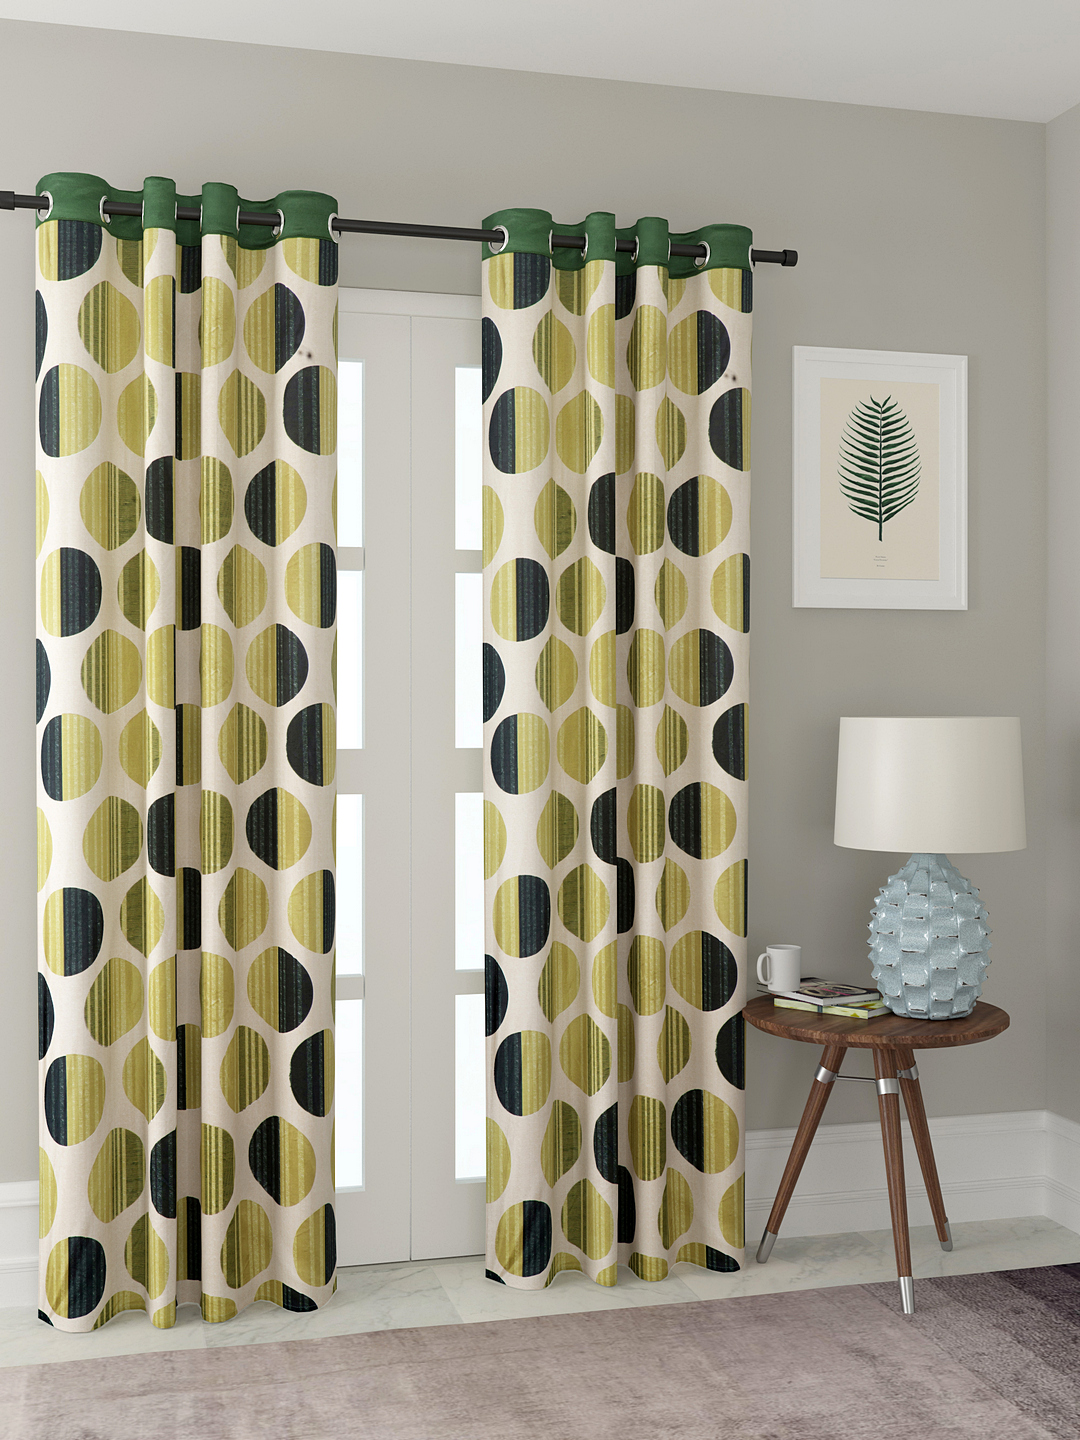 Polyester Printed Long Door Curtains for Bedroom, Kitchen, Kids or Living Room-017_Set of 2